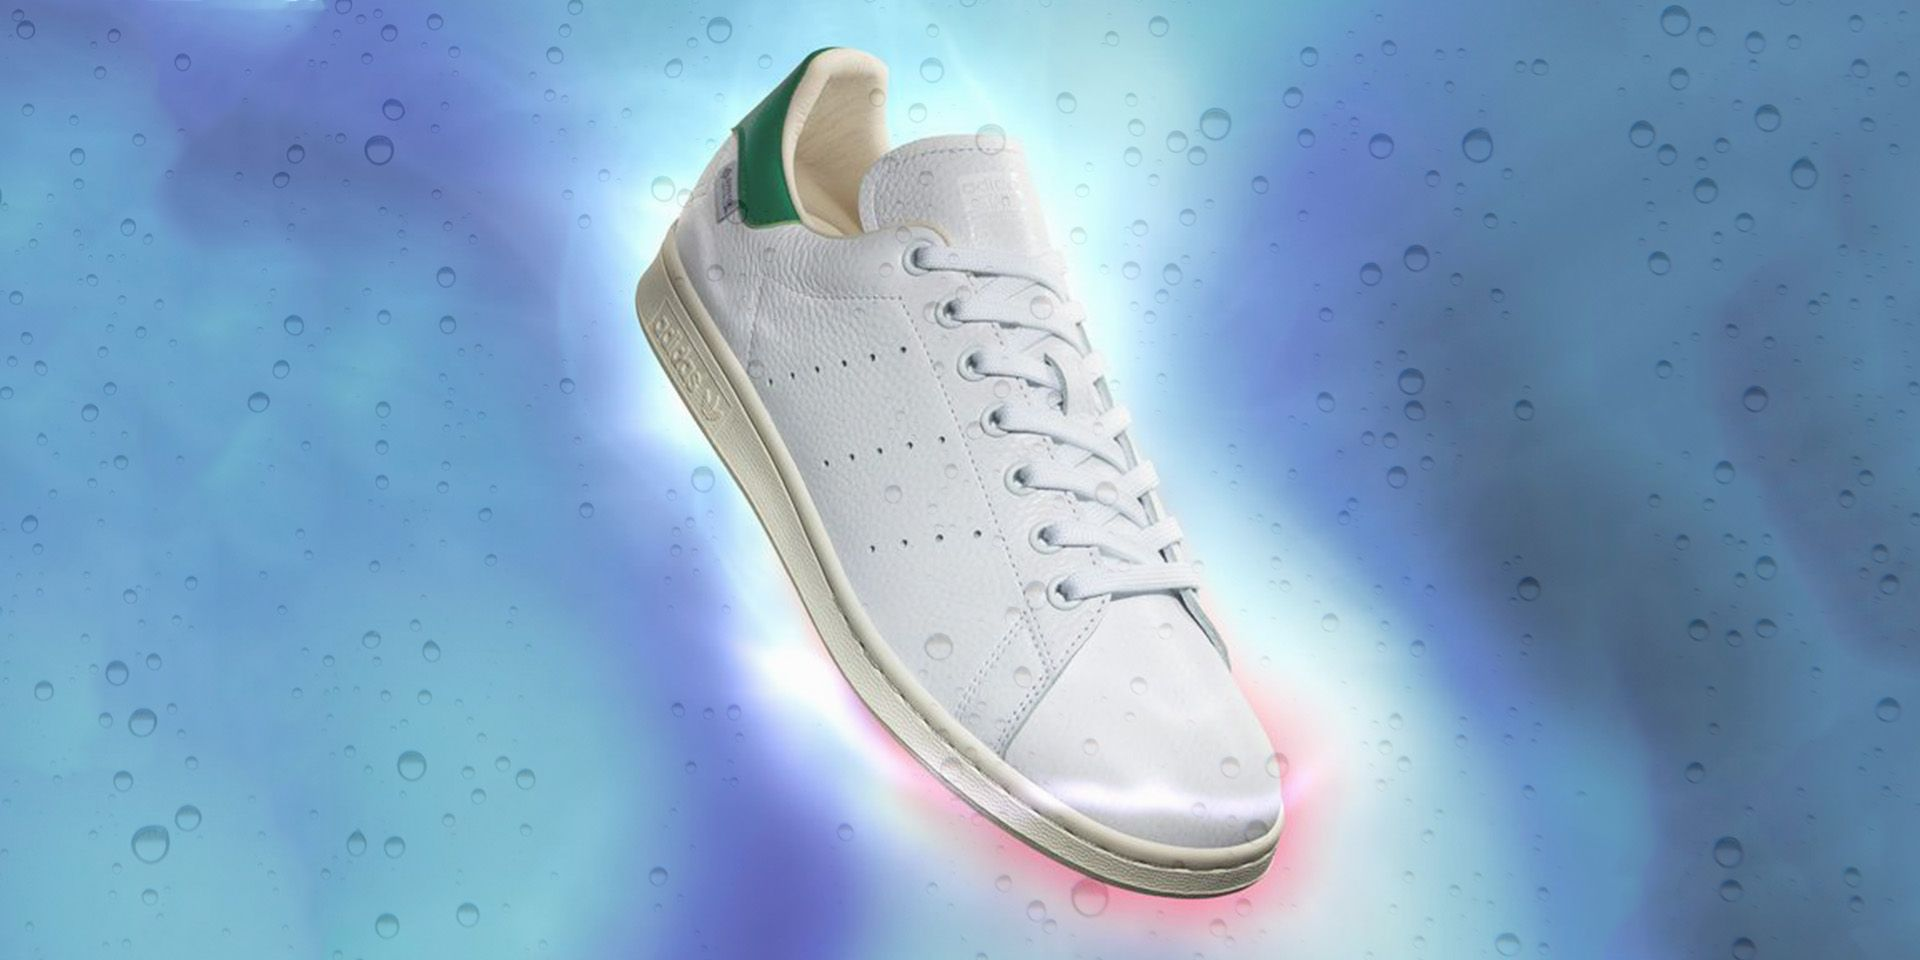 Adidas' New Gore-Tex-Equipped Stan Smith Is Here Just in Time